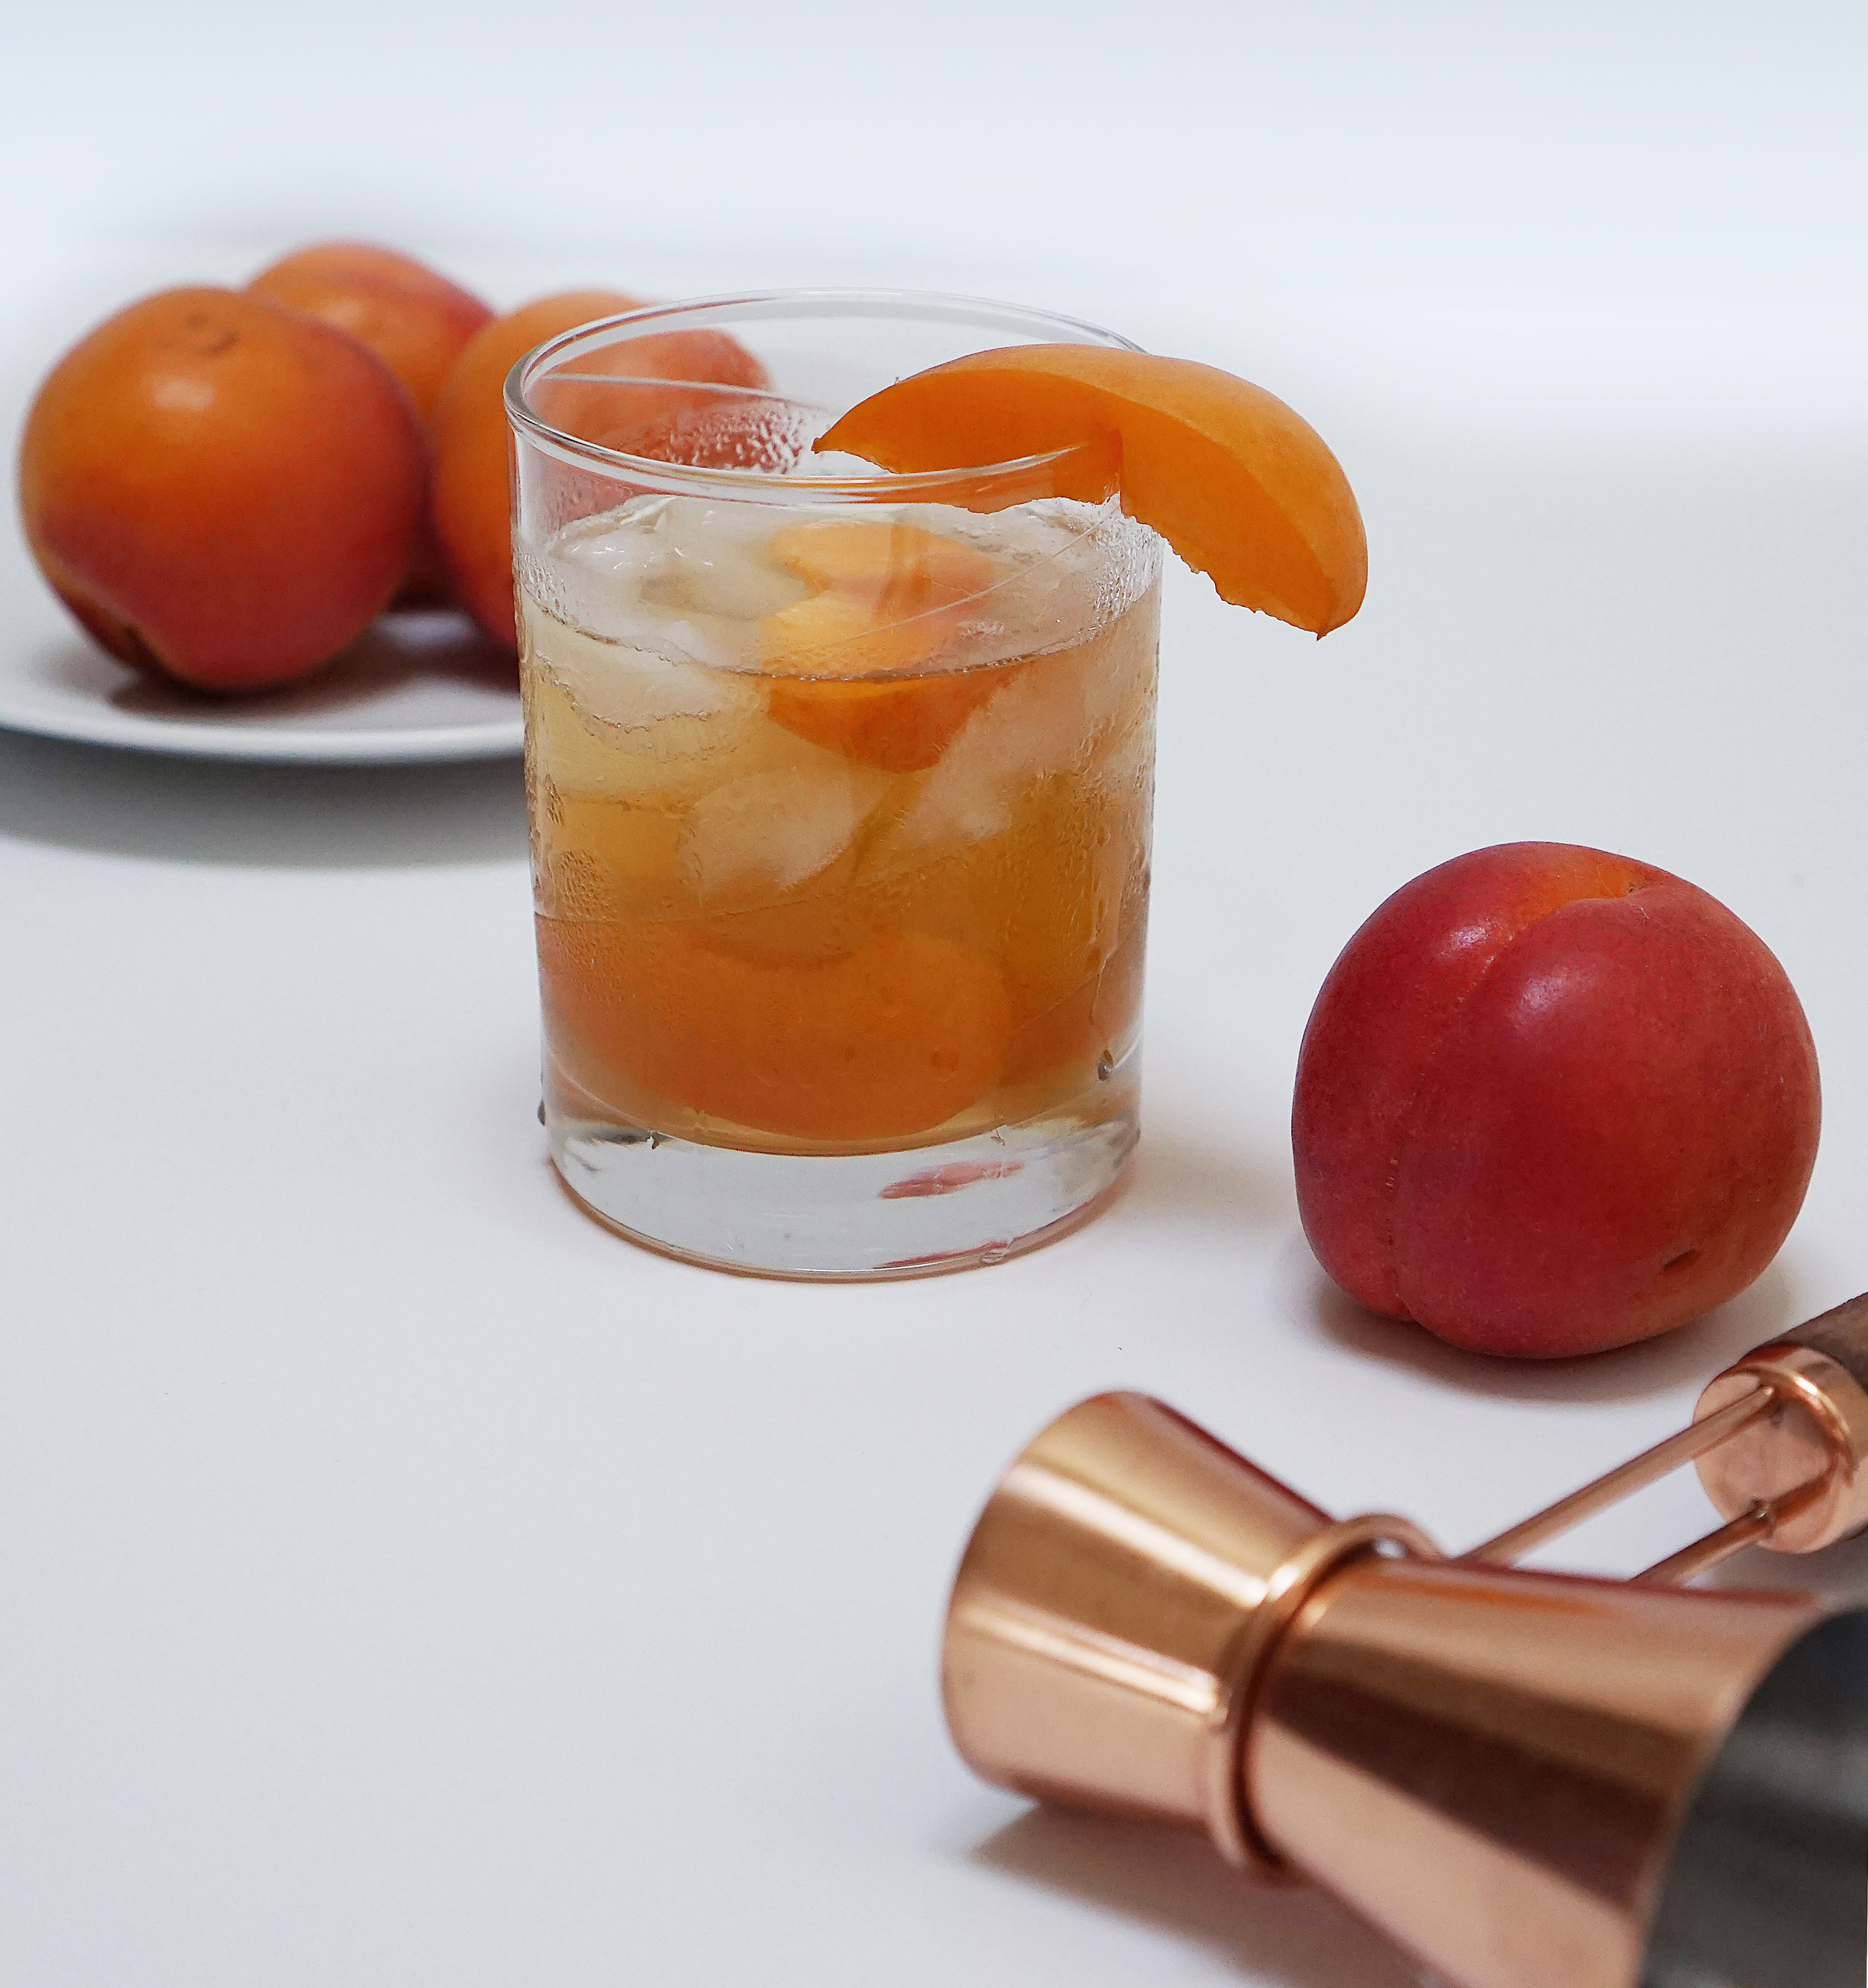 Apricot delight - Fresh apricot, pureed⠀Mint leaves to taste⠀0.5 oz fresh-squeezed lemon juice⠀1.5 oz gin⠀